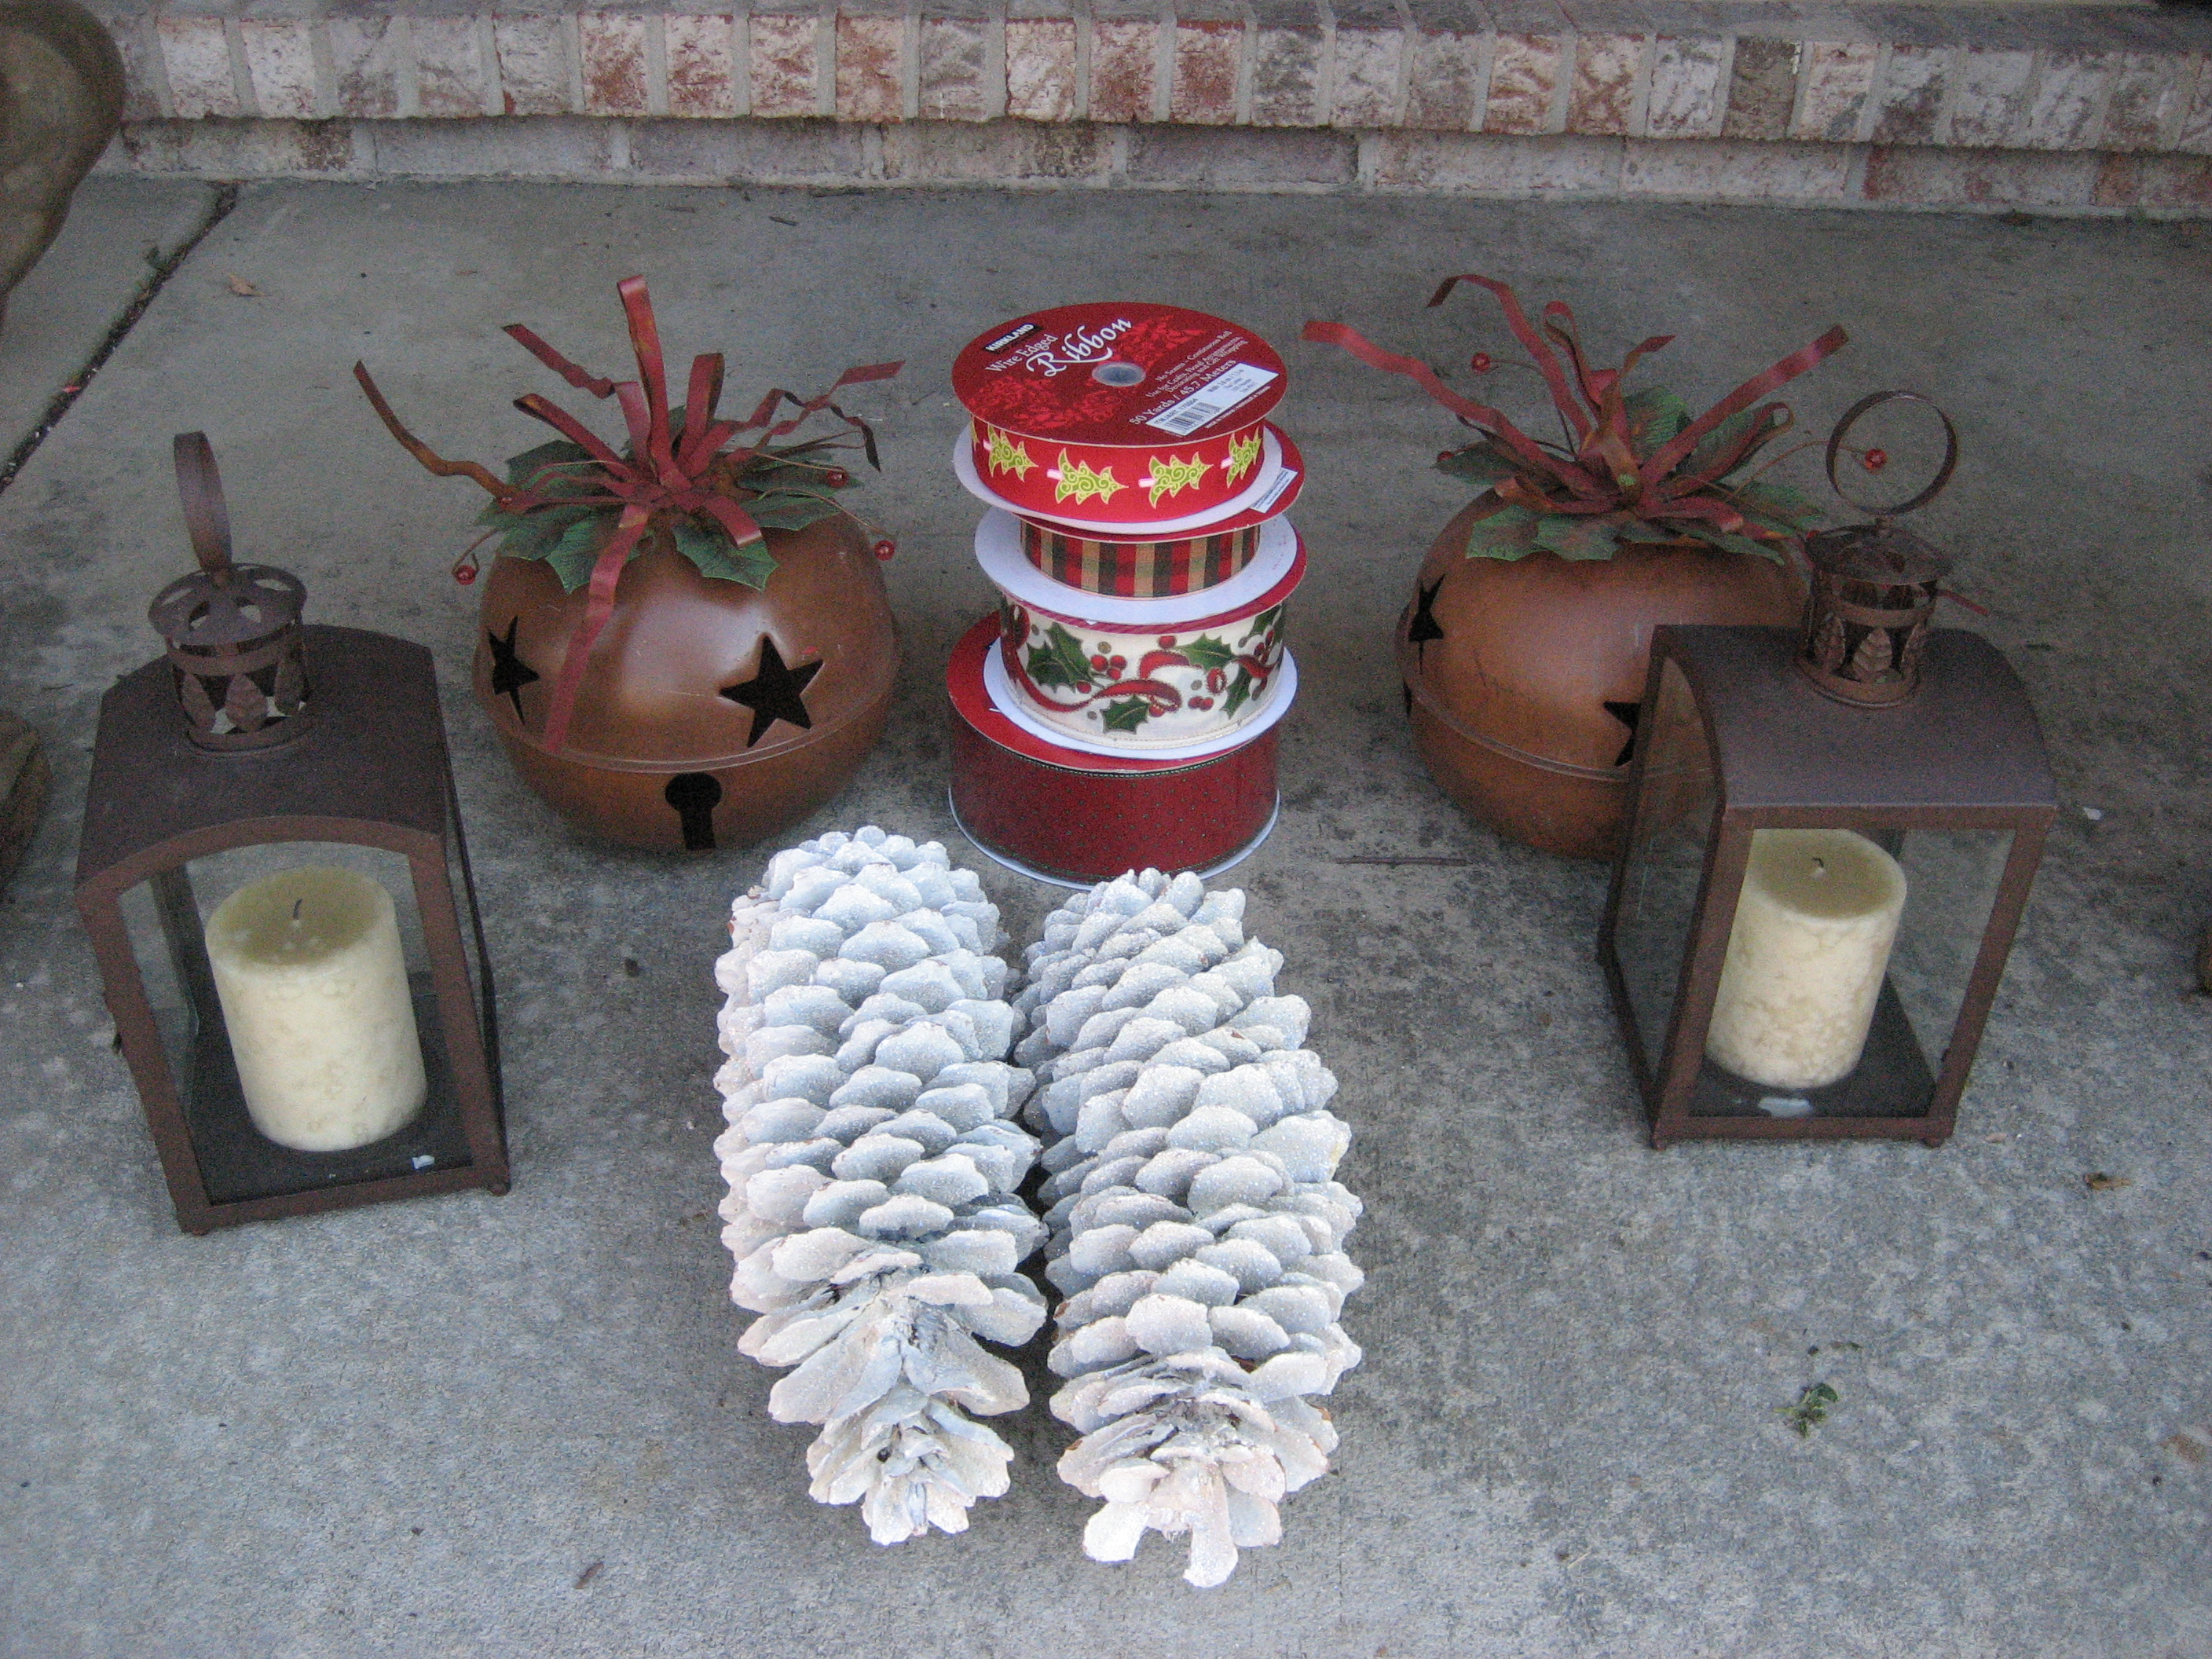 Gorgeous do it yourself winter urns more is more mom whimsical winter items solutioingenieria Gallery